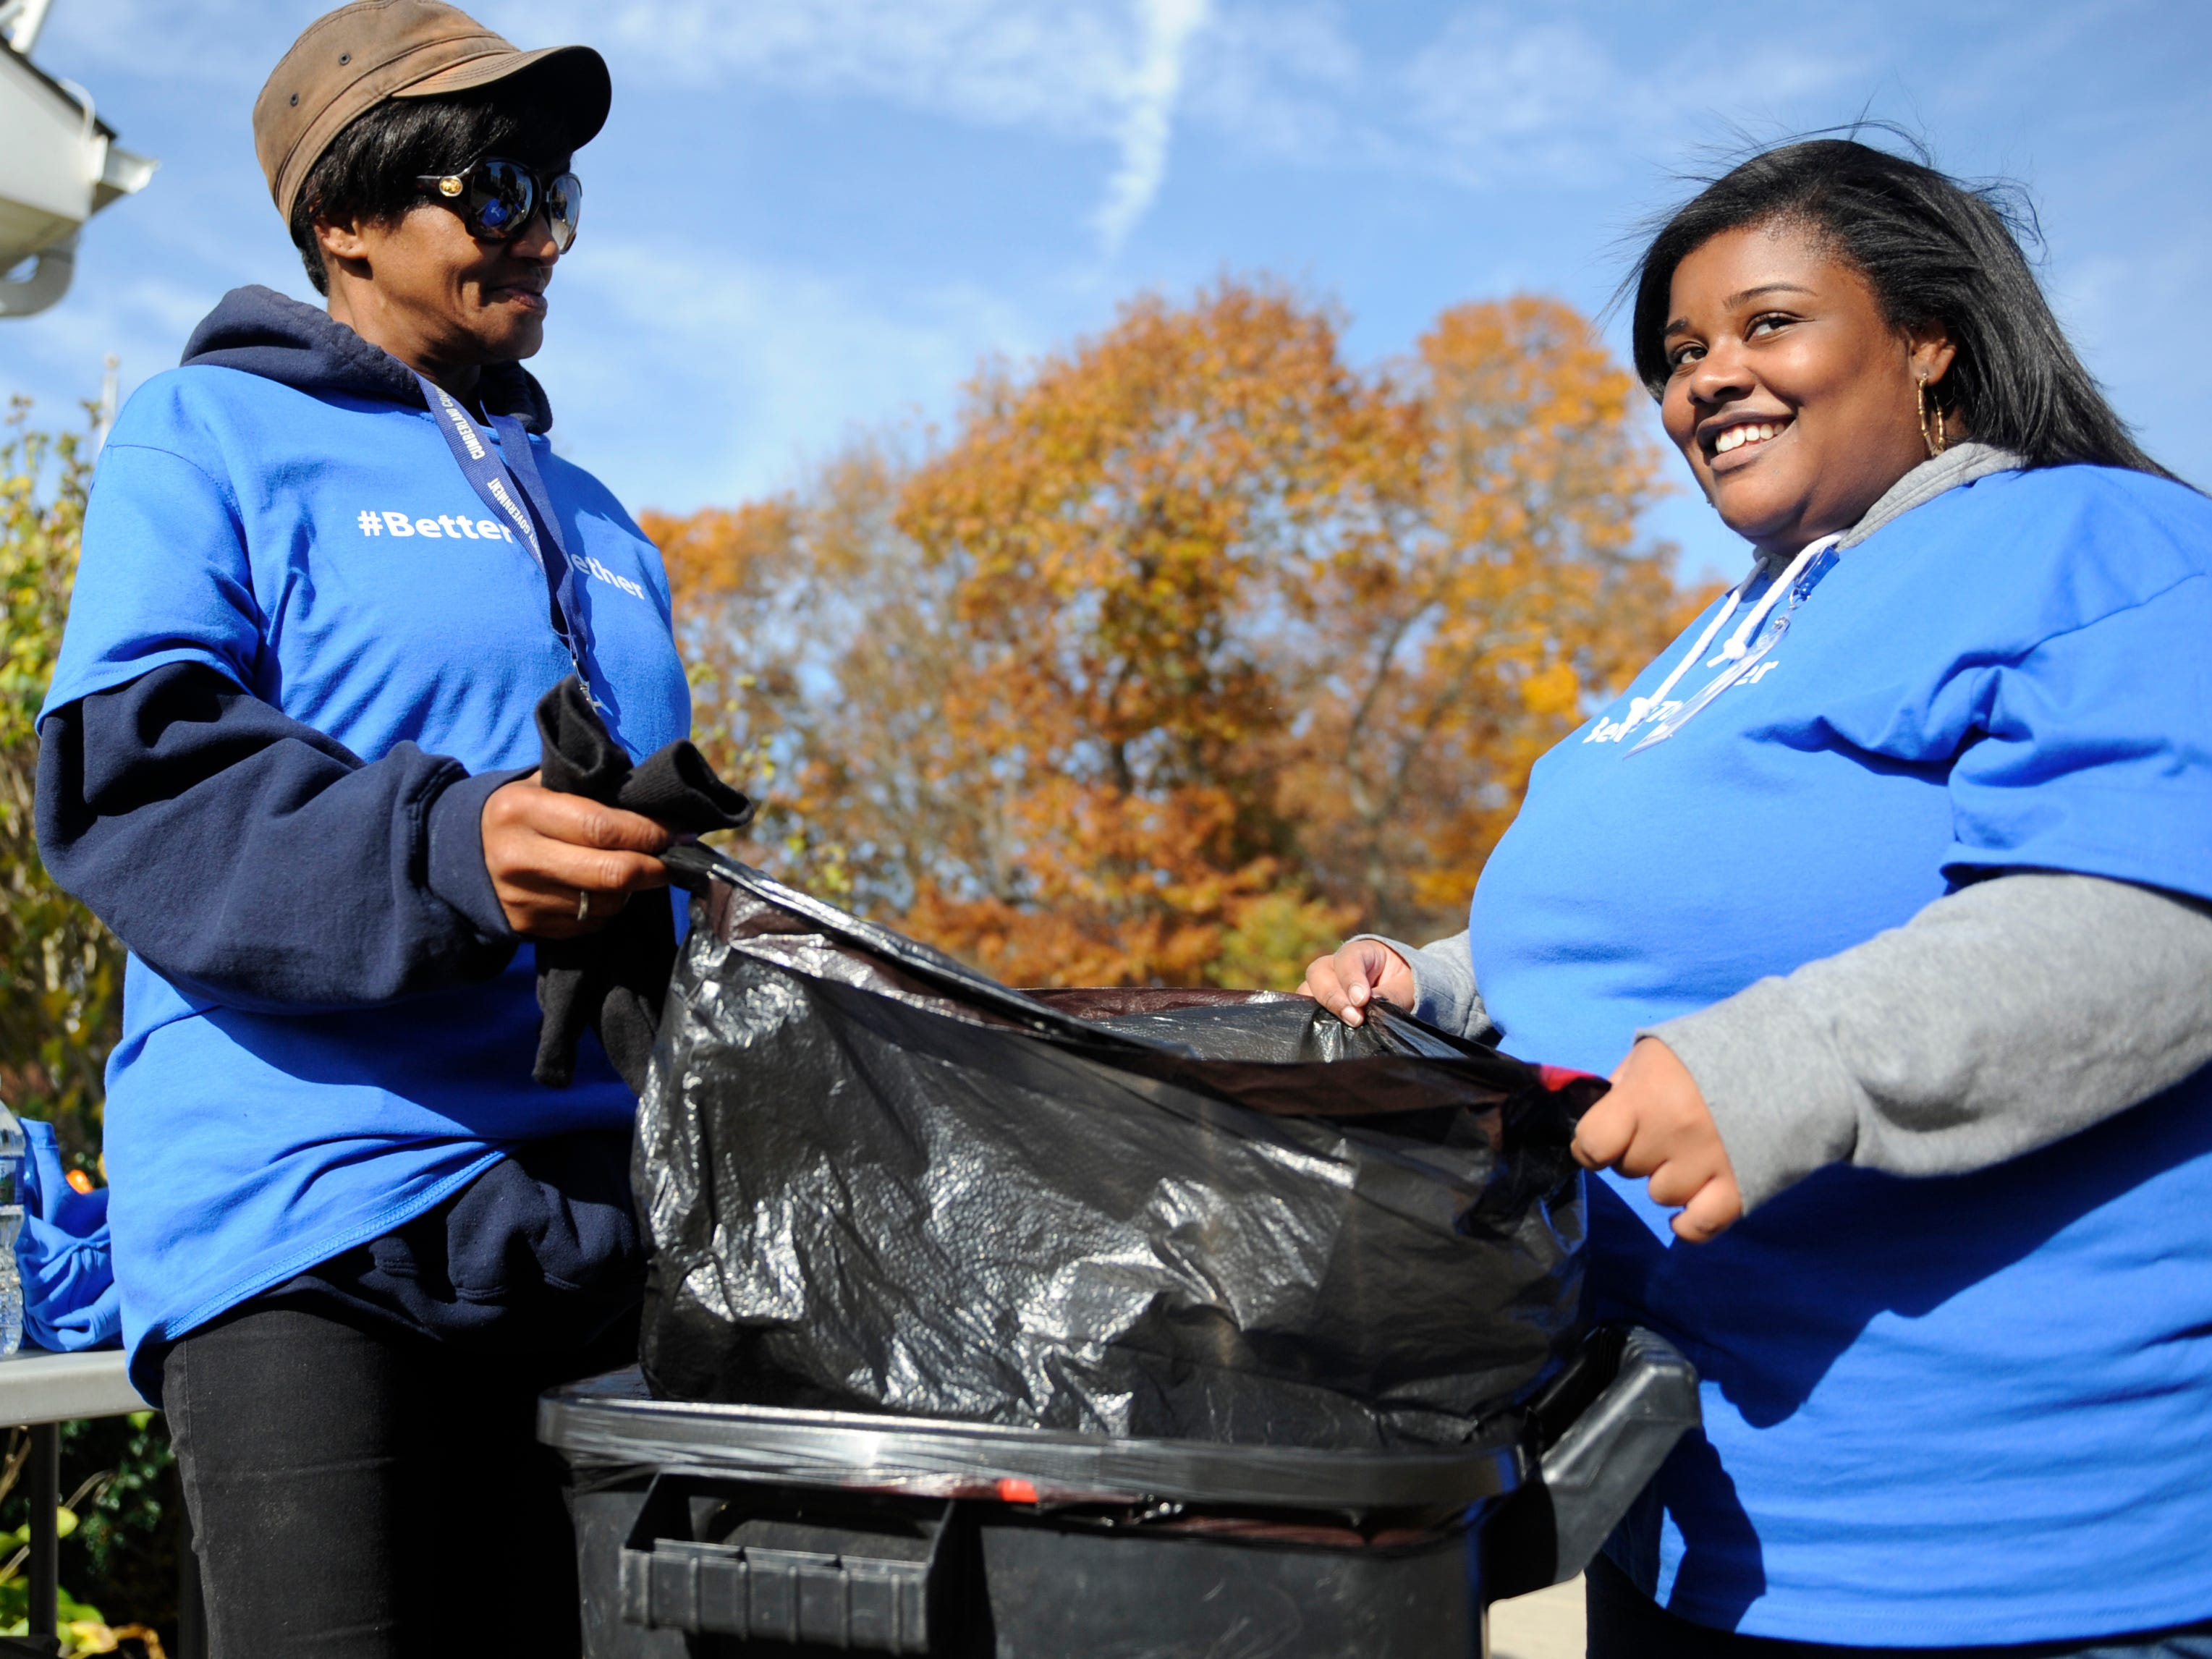 Angela Pernell (left) and Kai Dubrey help put away trash during a community clean up event at Oakview Apartments in Millville on Thursday, November 8, 2018.